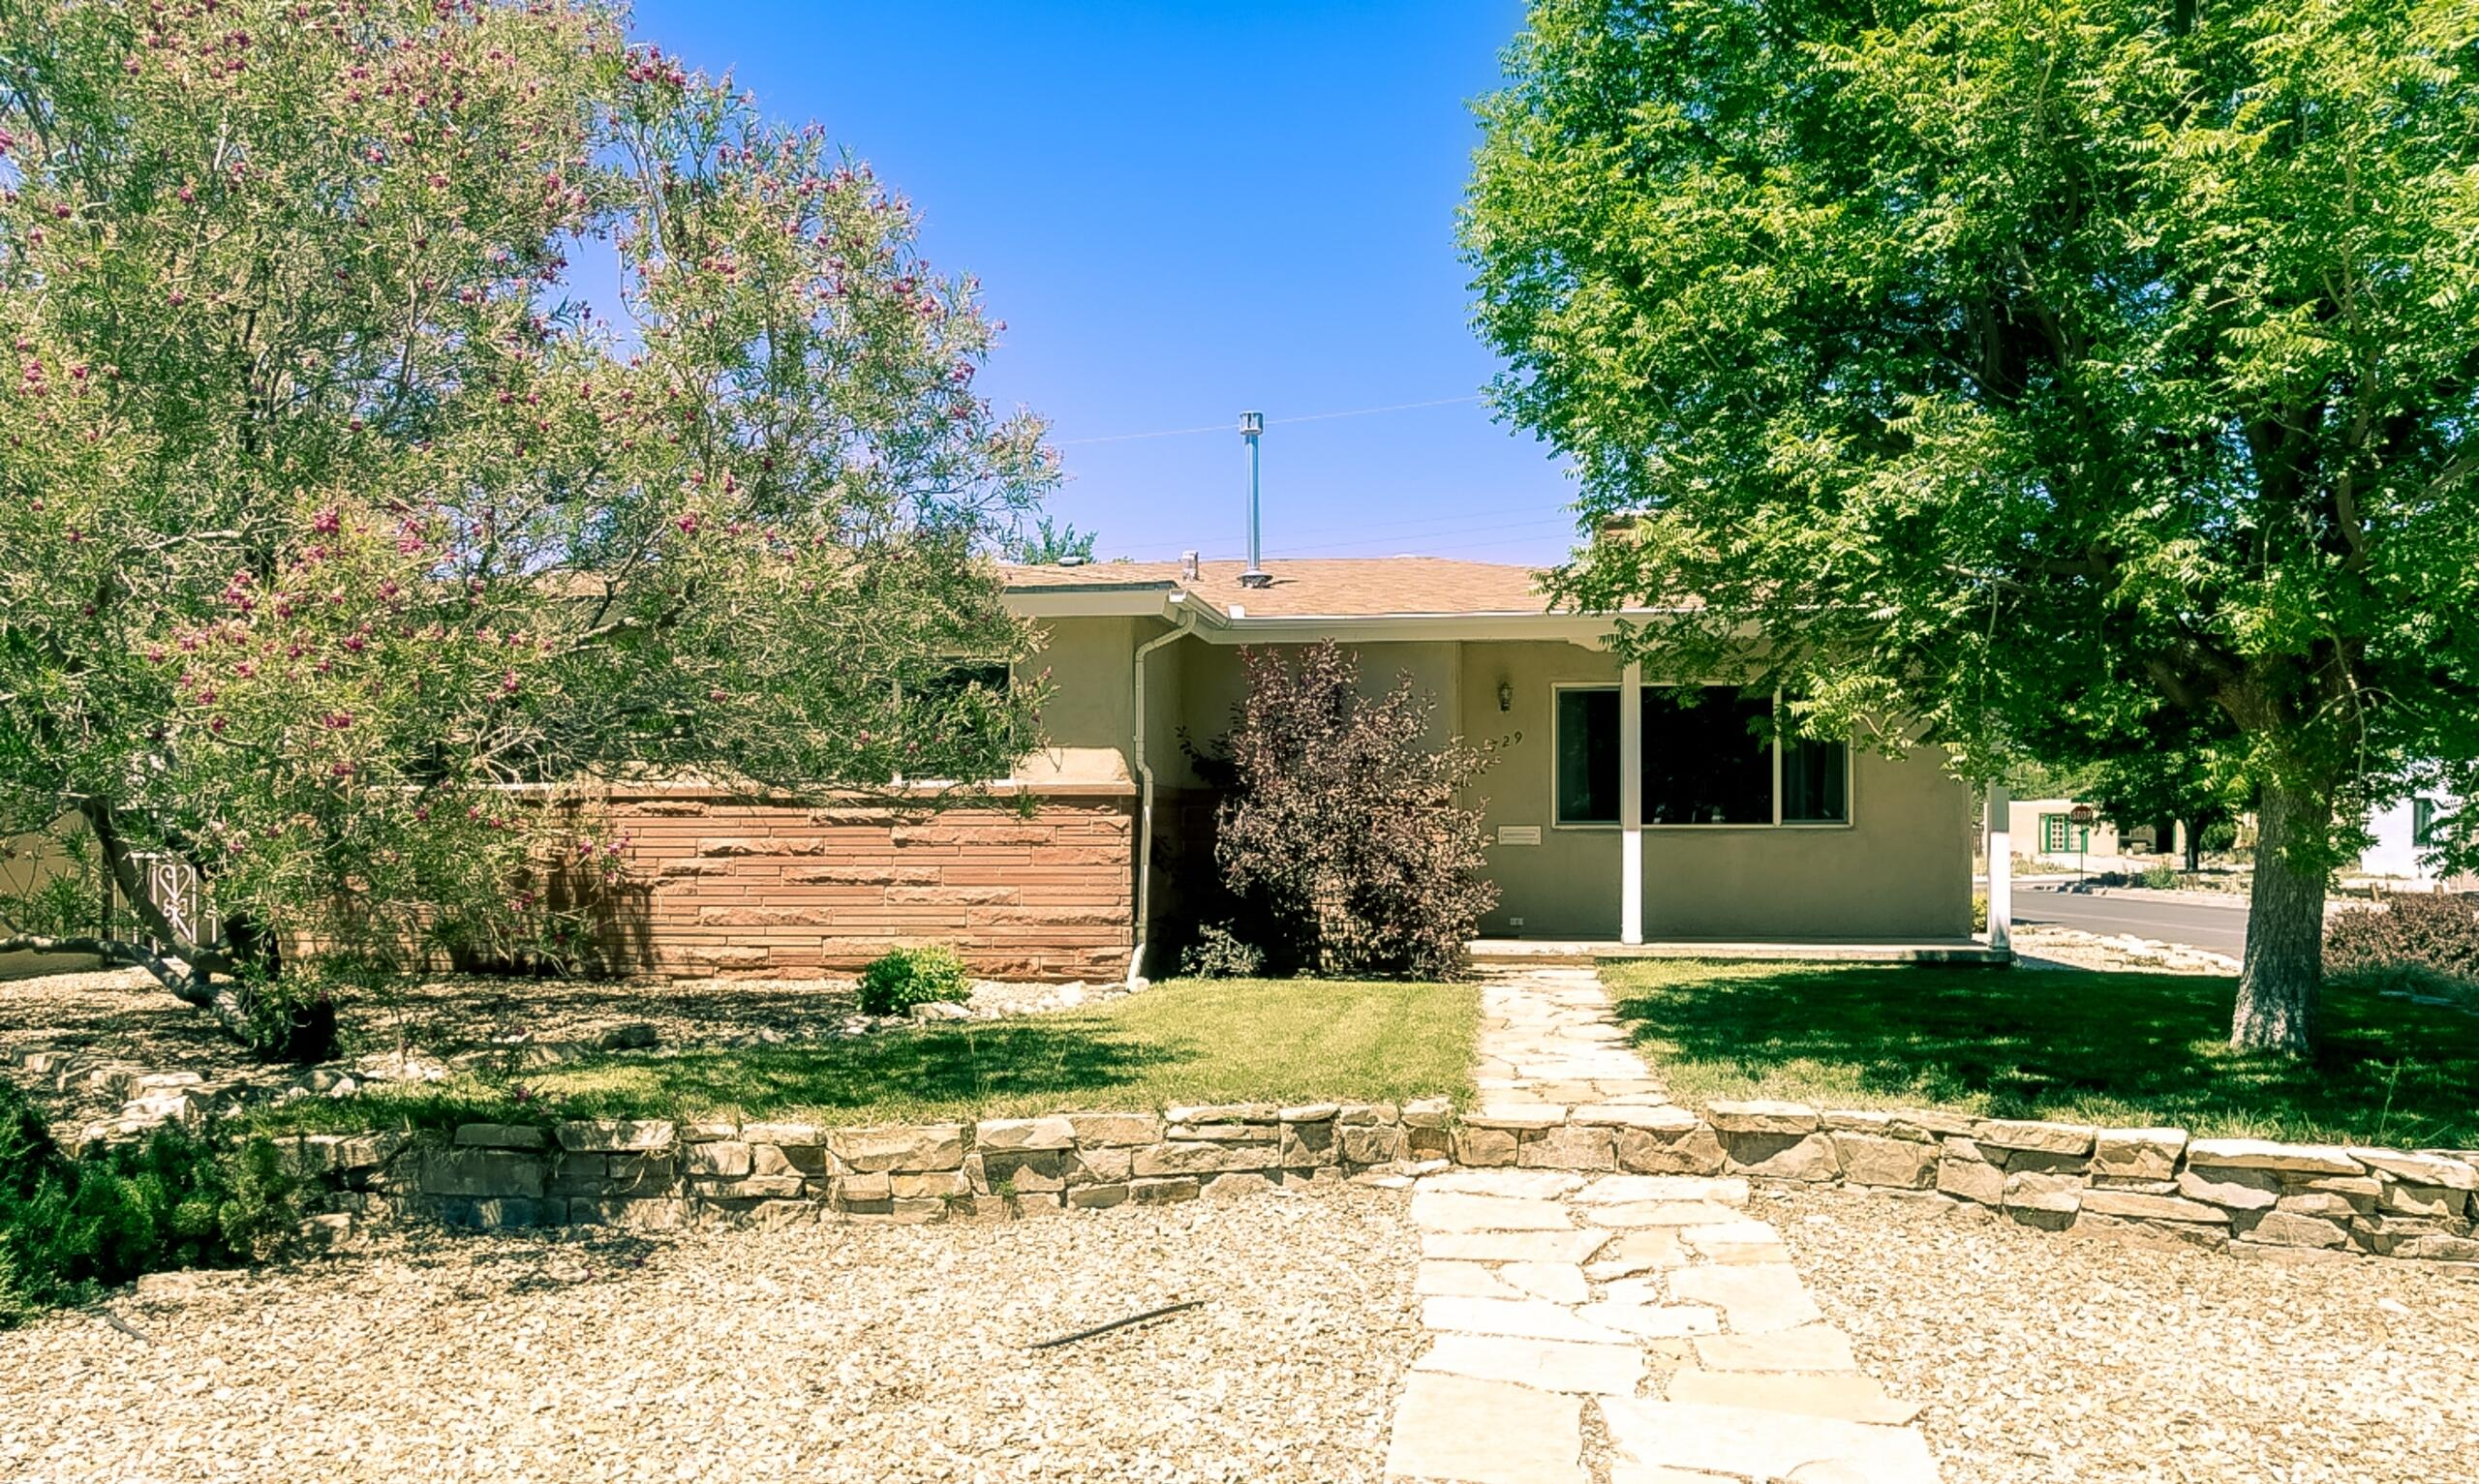 Amazing 1-level mid-century ranch-style home on a beautifully landscaped corner lot directly across from Marion Fox Park! Inside finds a super floorplan w/oak floors, sandstone gaslog fireplace, sandstone windowsills, thermal windows & more. Living & dining rooms. Modern kitchen w/poured concrete counters & stainless-steel appliances (fridge incl!), 2 updated baths & 3 big bedrooms incl huge master suite w/walk-in closet. Laundry room w/extra storage & stacked washer/dryer incl. Refrig air, solar electric & on-demand hot water w/solar assist. Front entry porch. Wood deck overlooks landscaped backyard. Two car garage + extra off-street parking. Newer stucco with 2-inch foam insulation + sandstone veneer. Auto drip/irrigation. Located on Bike Blvd!